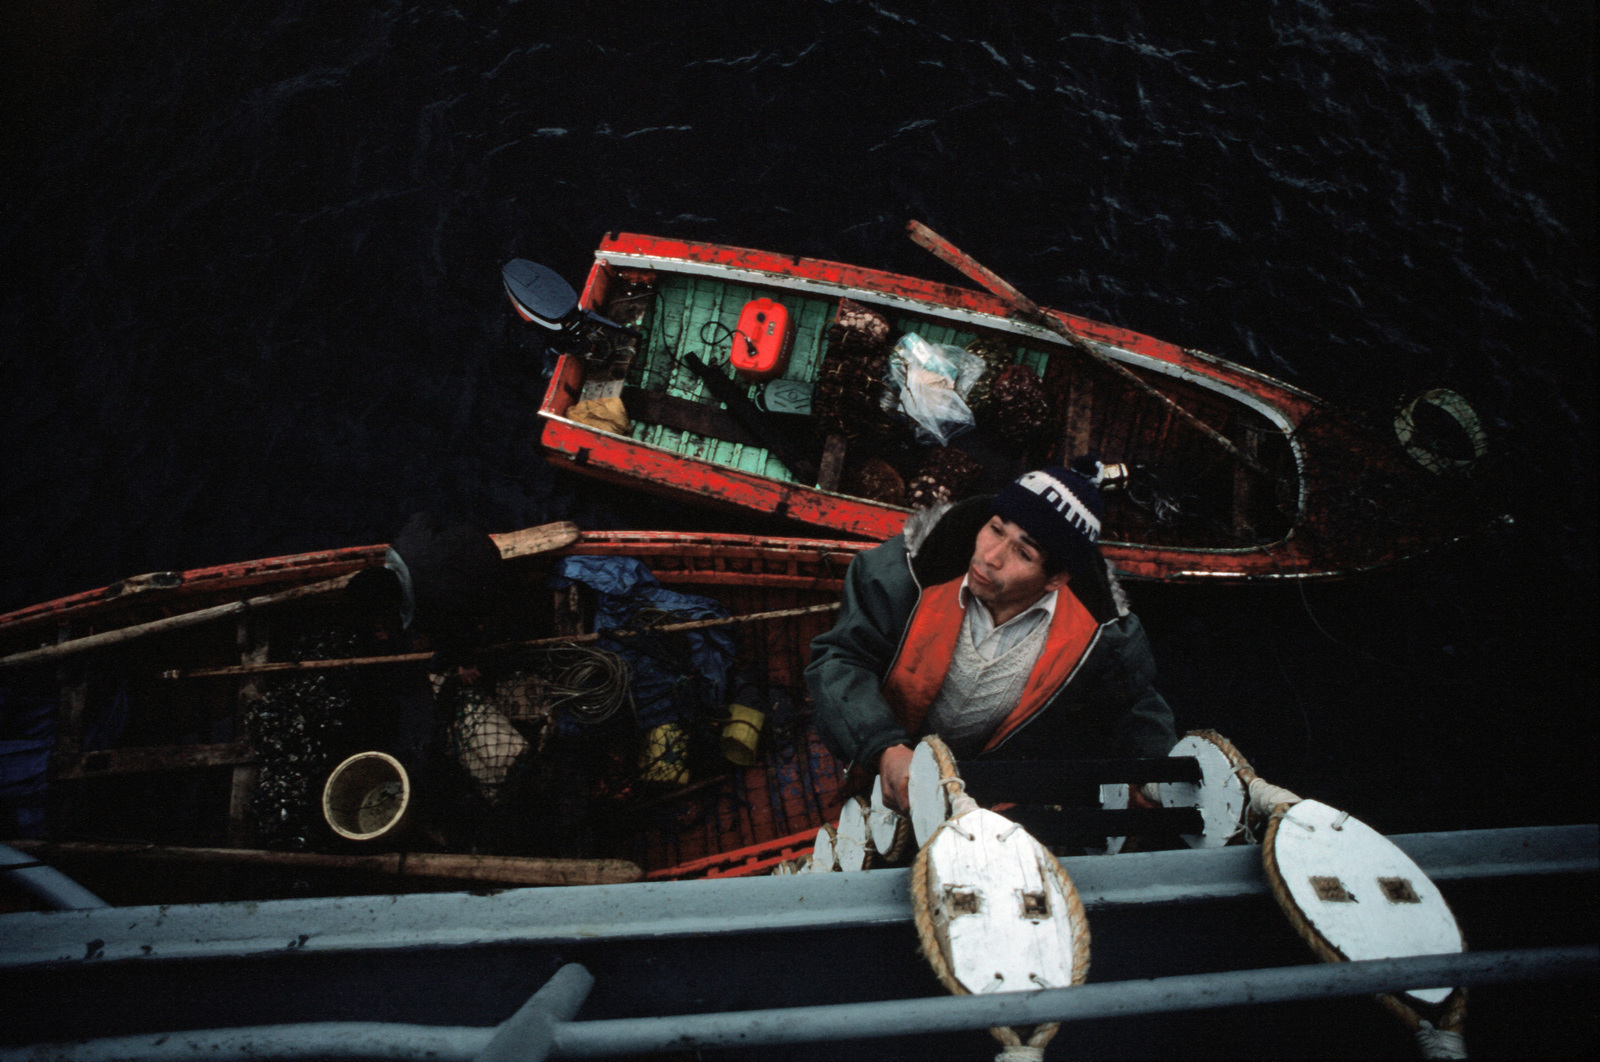 A Chilean fisherman climbs a ladder to go aboard the destroyer USS THORN (DD 988) to sell seafood to the crewman while the ship is stopped briefly in the inland waterway during Operation UNITAS XXV